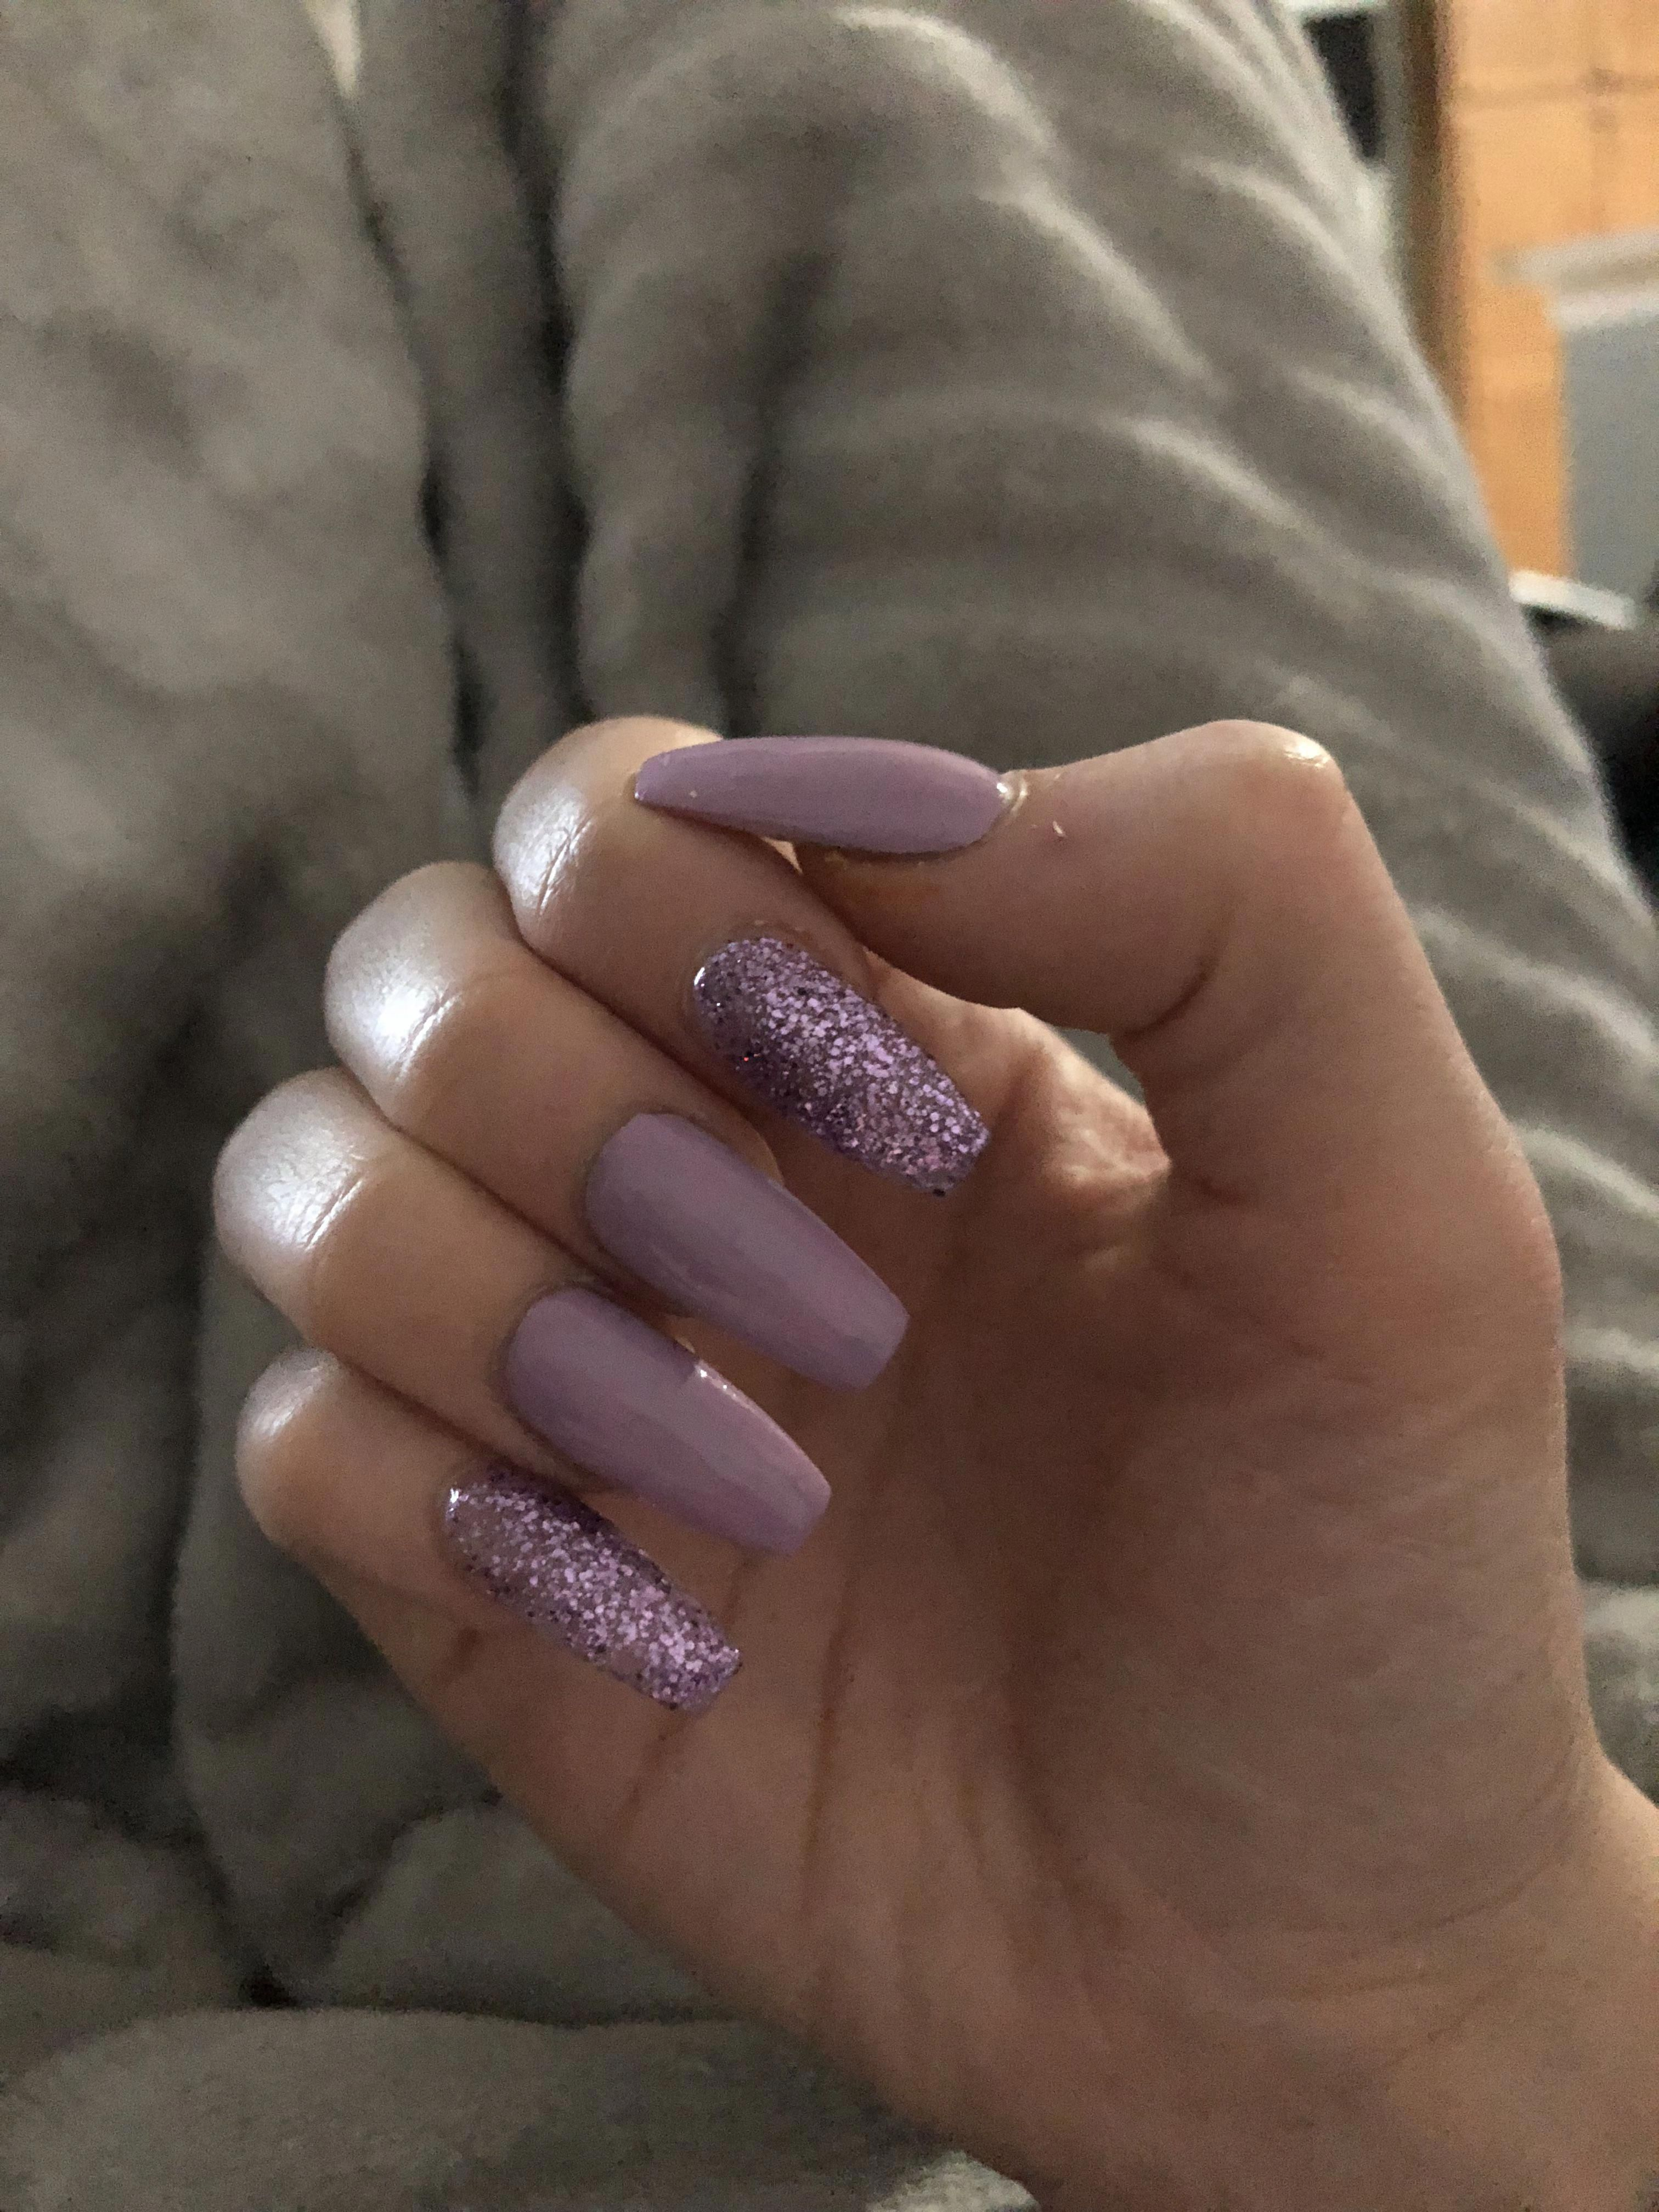 Pink And Purple Sparkles Or Glitter Nails Sparkly And Glittery Coffin Shaped Long Acr Sparkly Acrylic Nails Acrylic Nails Coffin Glitter Glitter Nails Acrylic